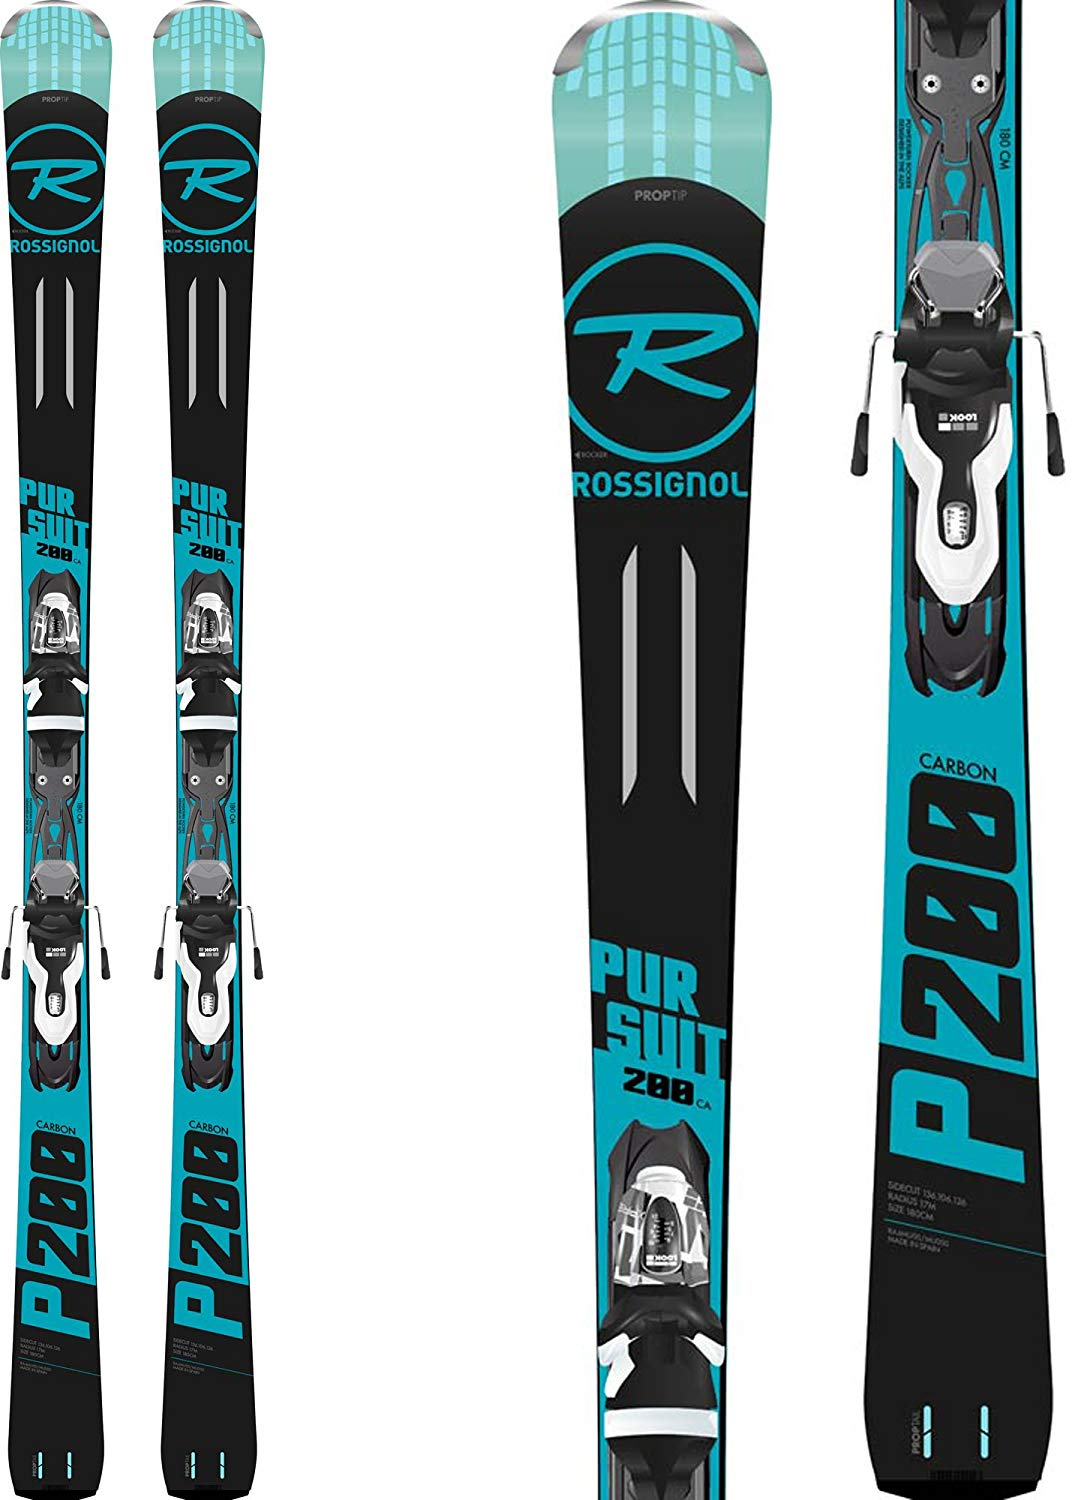 Rossignol Pursuit 200 Carbon Skis - Cheap Rossignol Skis